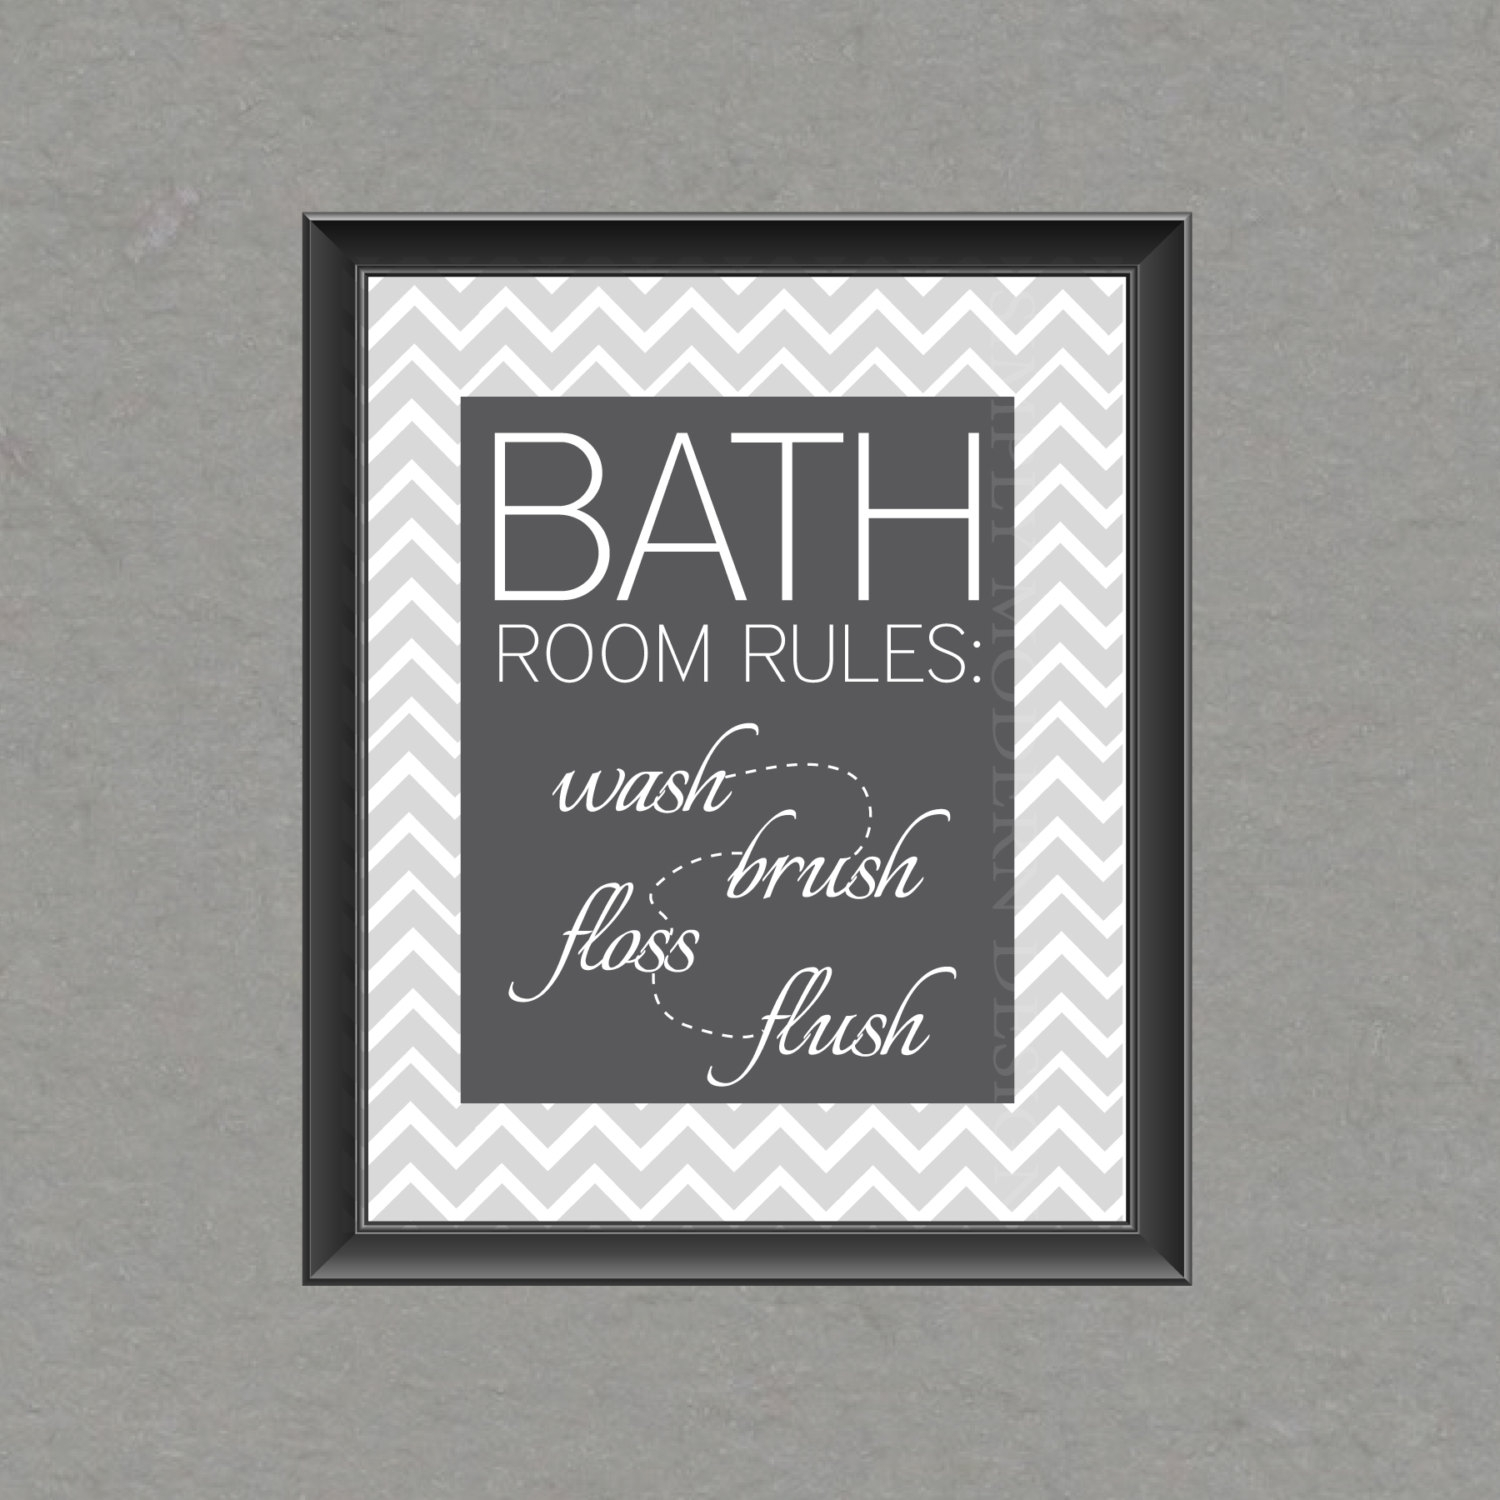 Wall Art: Astounding Design For Bathroom Wall Art Bathroom Intended For Latest Abstract Wall Art For Bathroom (View 4 of 20)